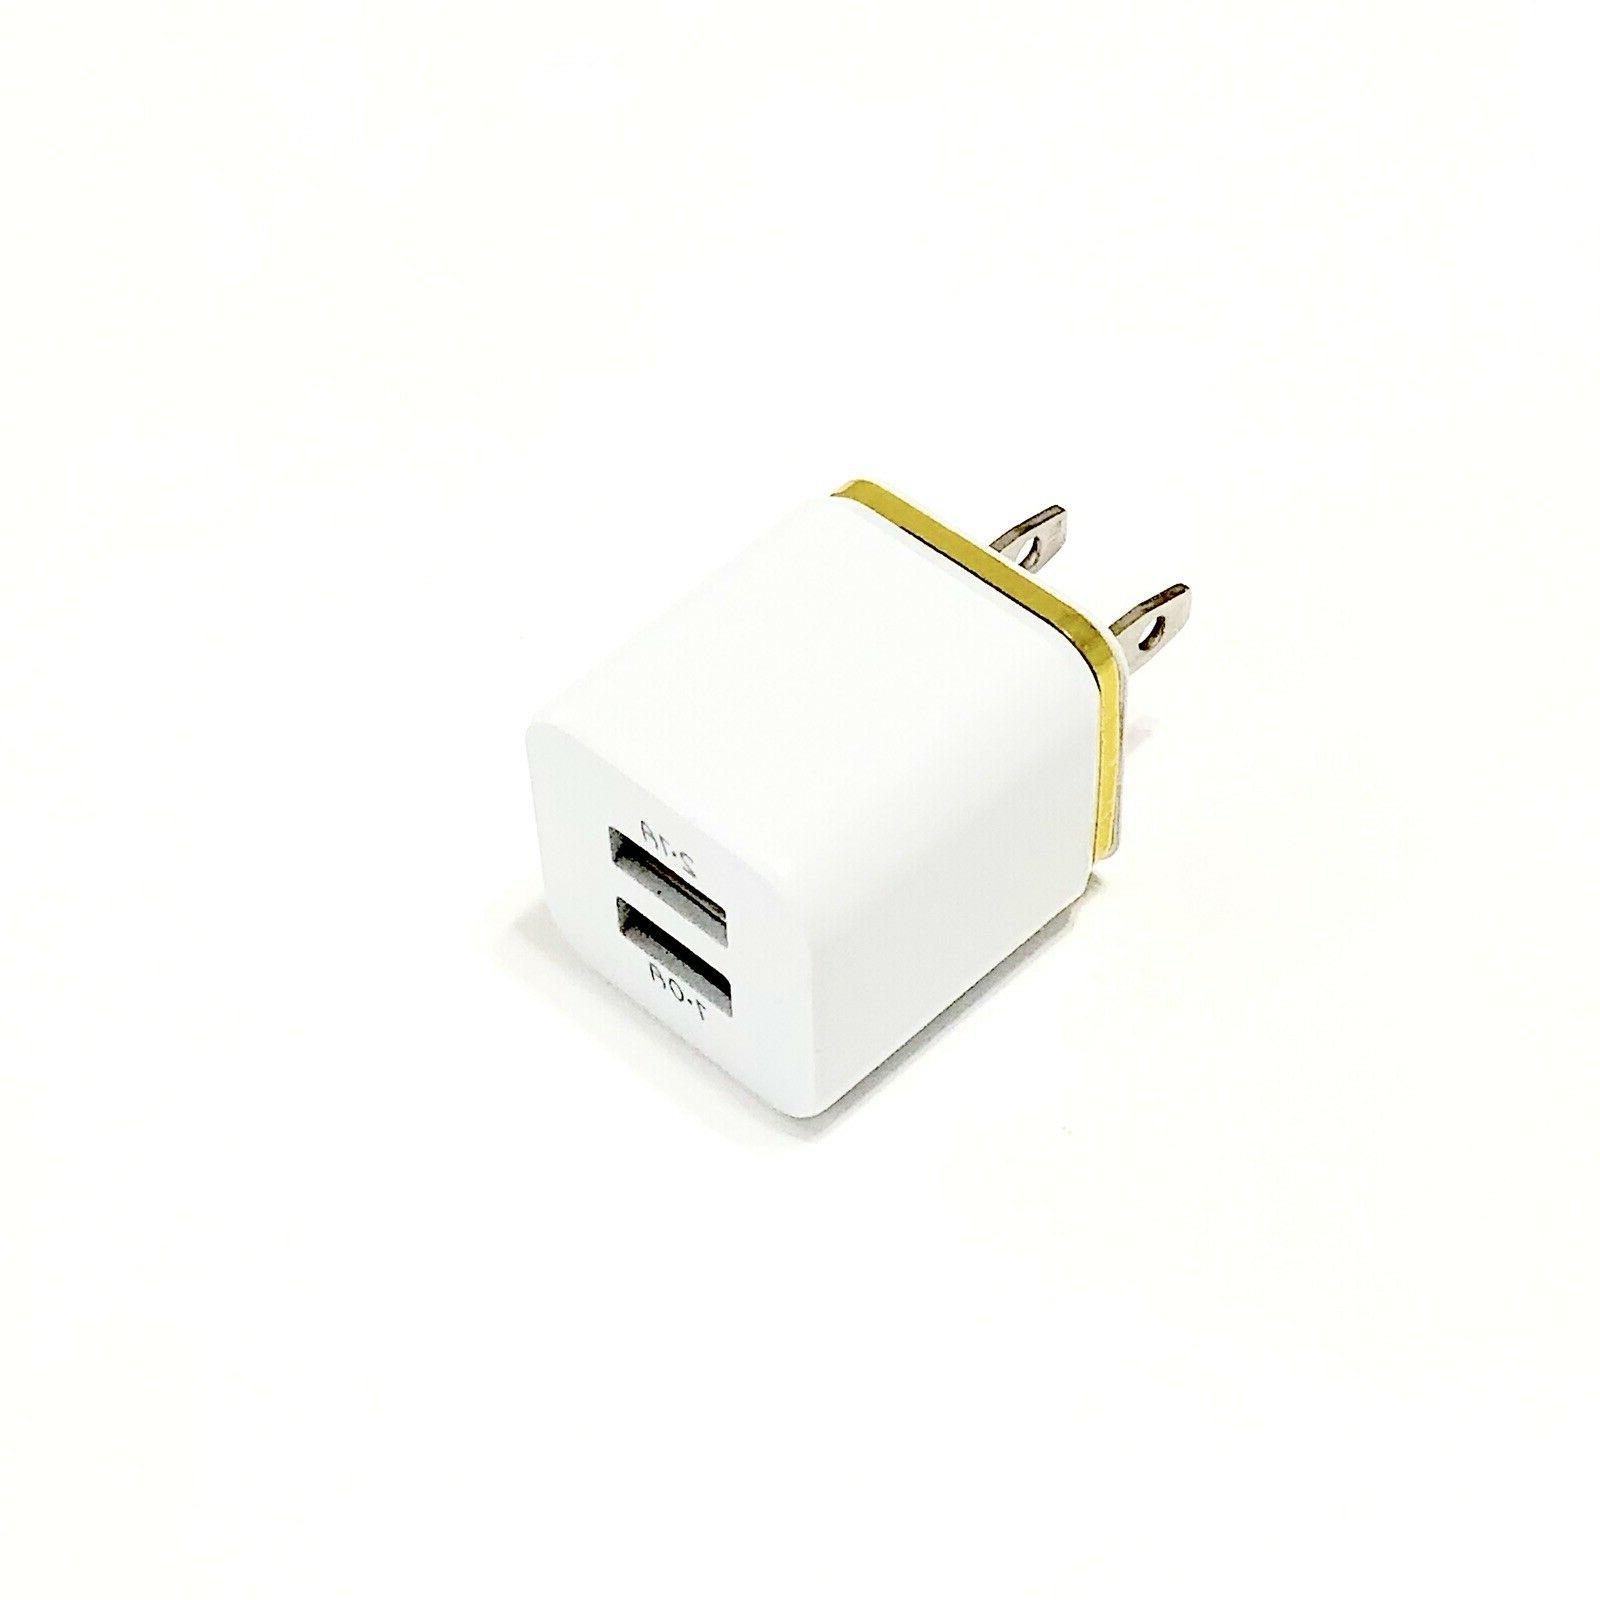 USB Double Wall Charger Adapter 5V For iPhone/ Android /Galaxy / LG.